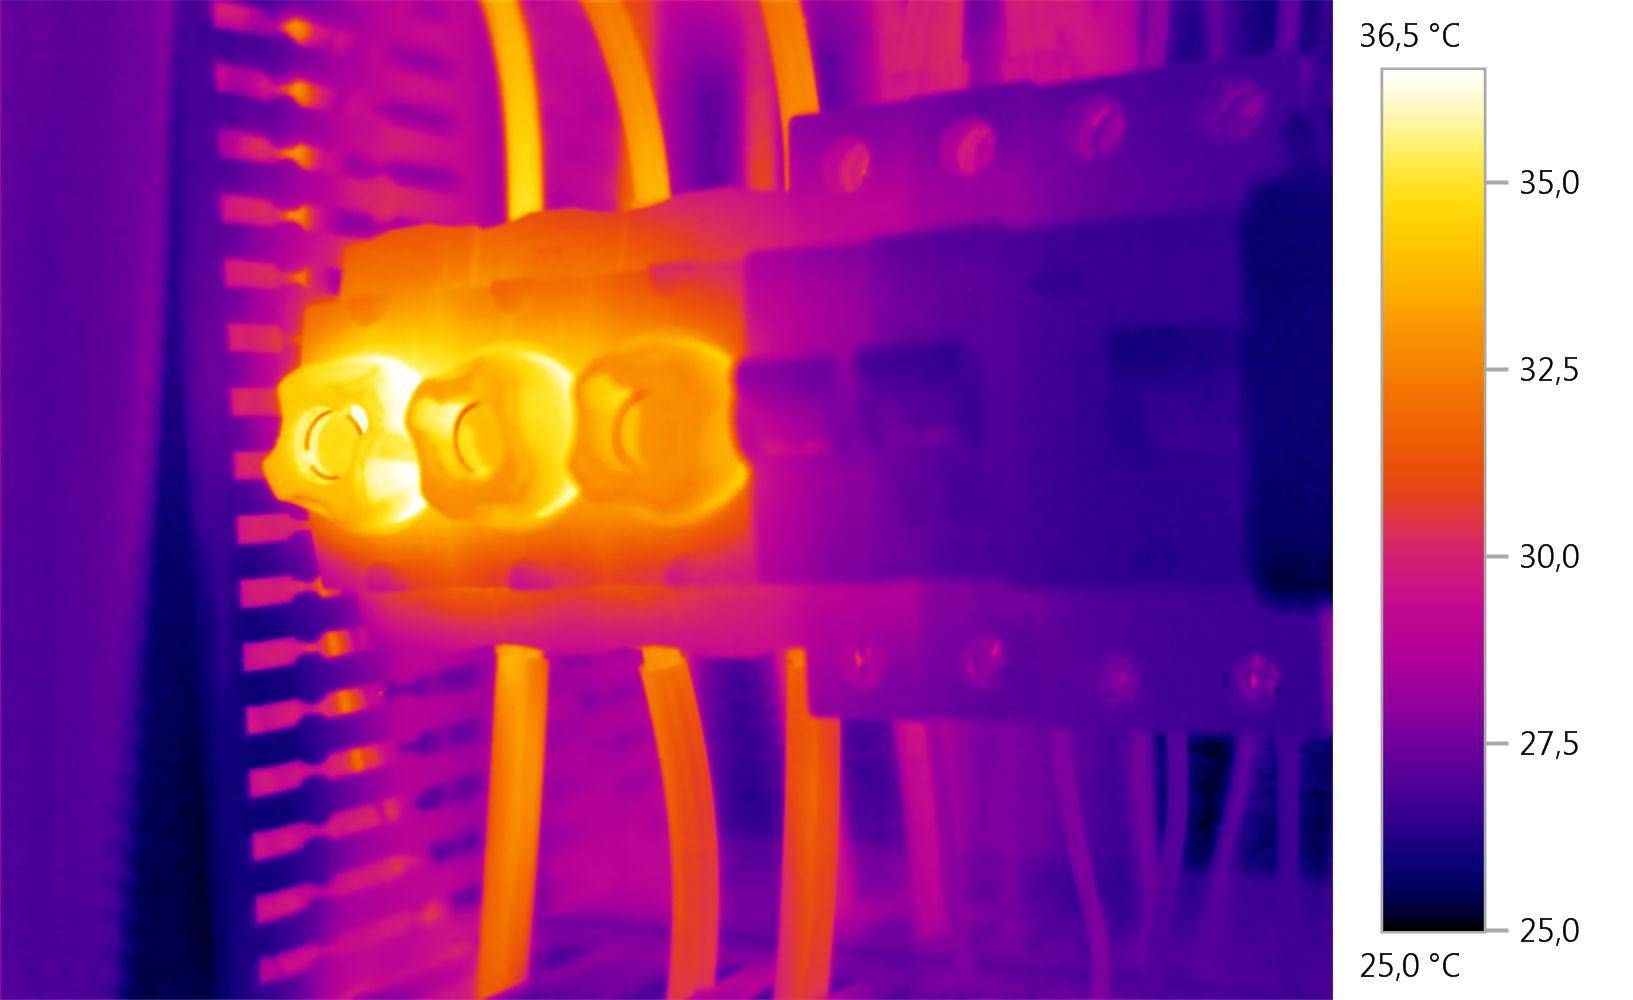 Thermal image electrical component